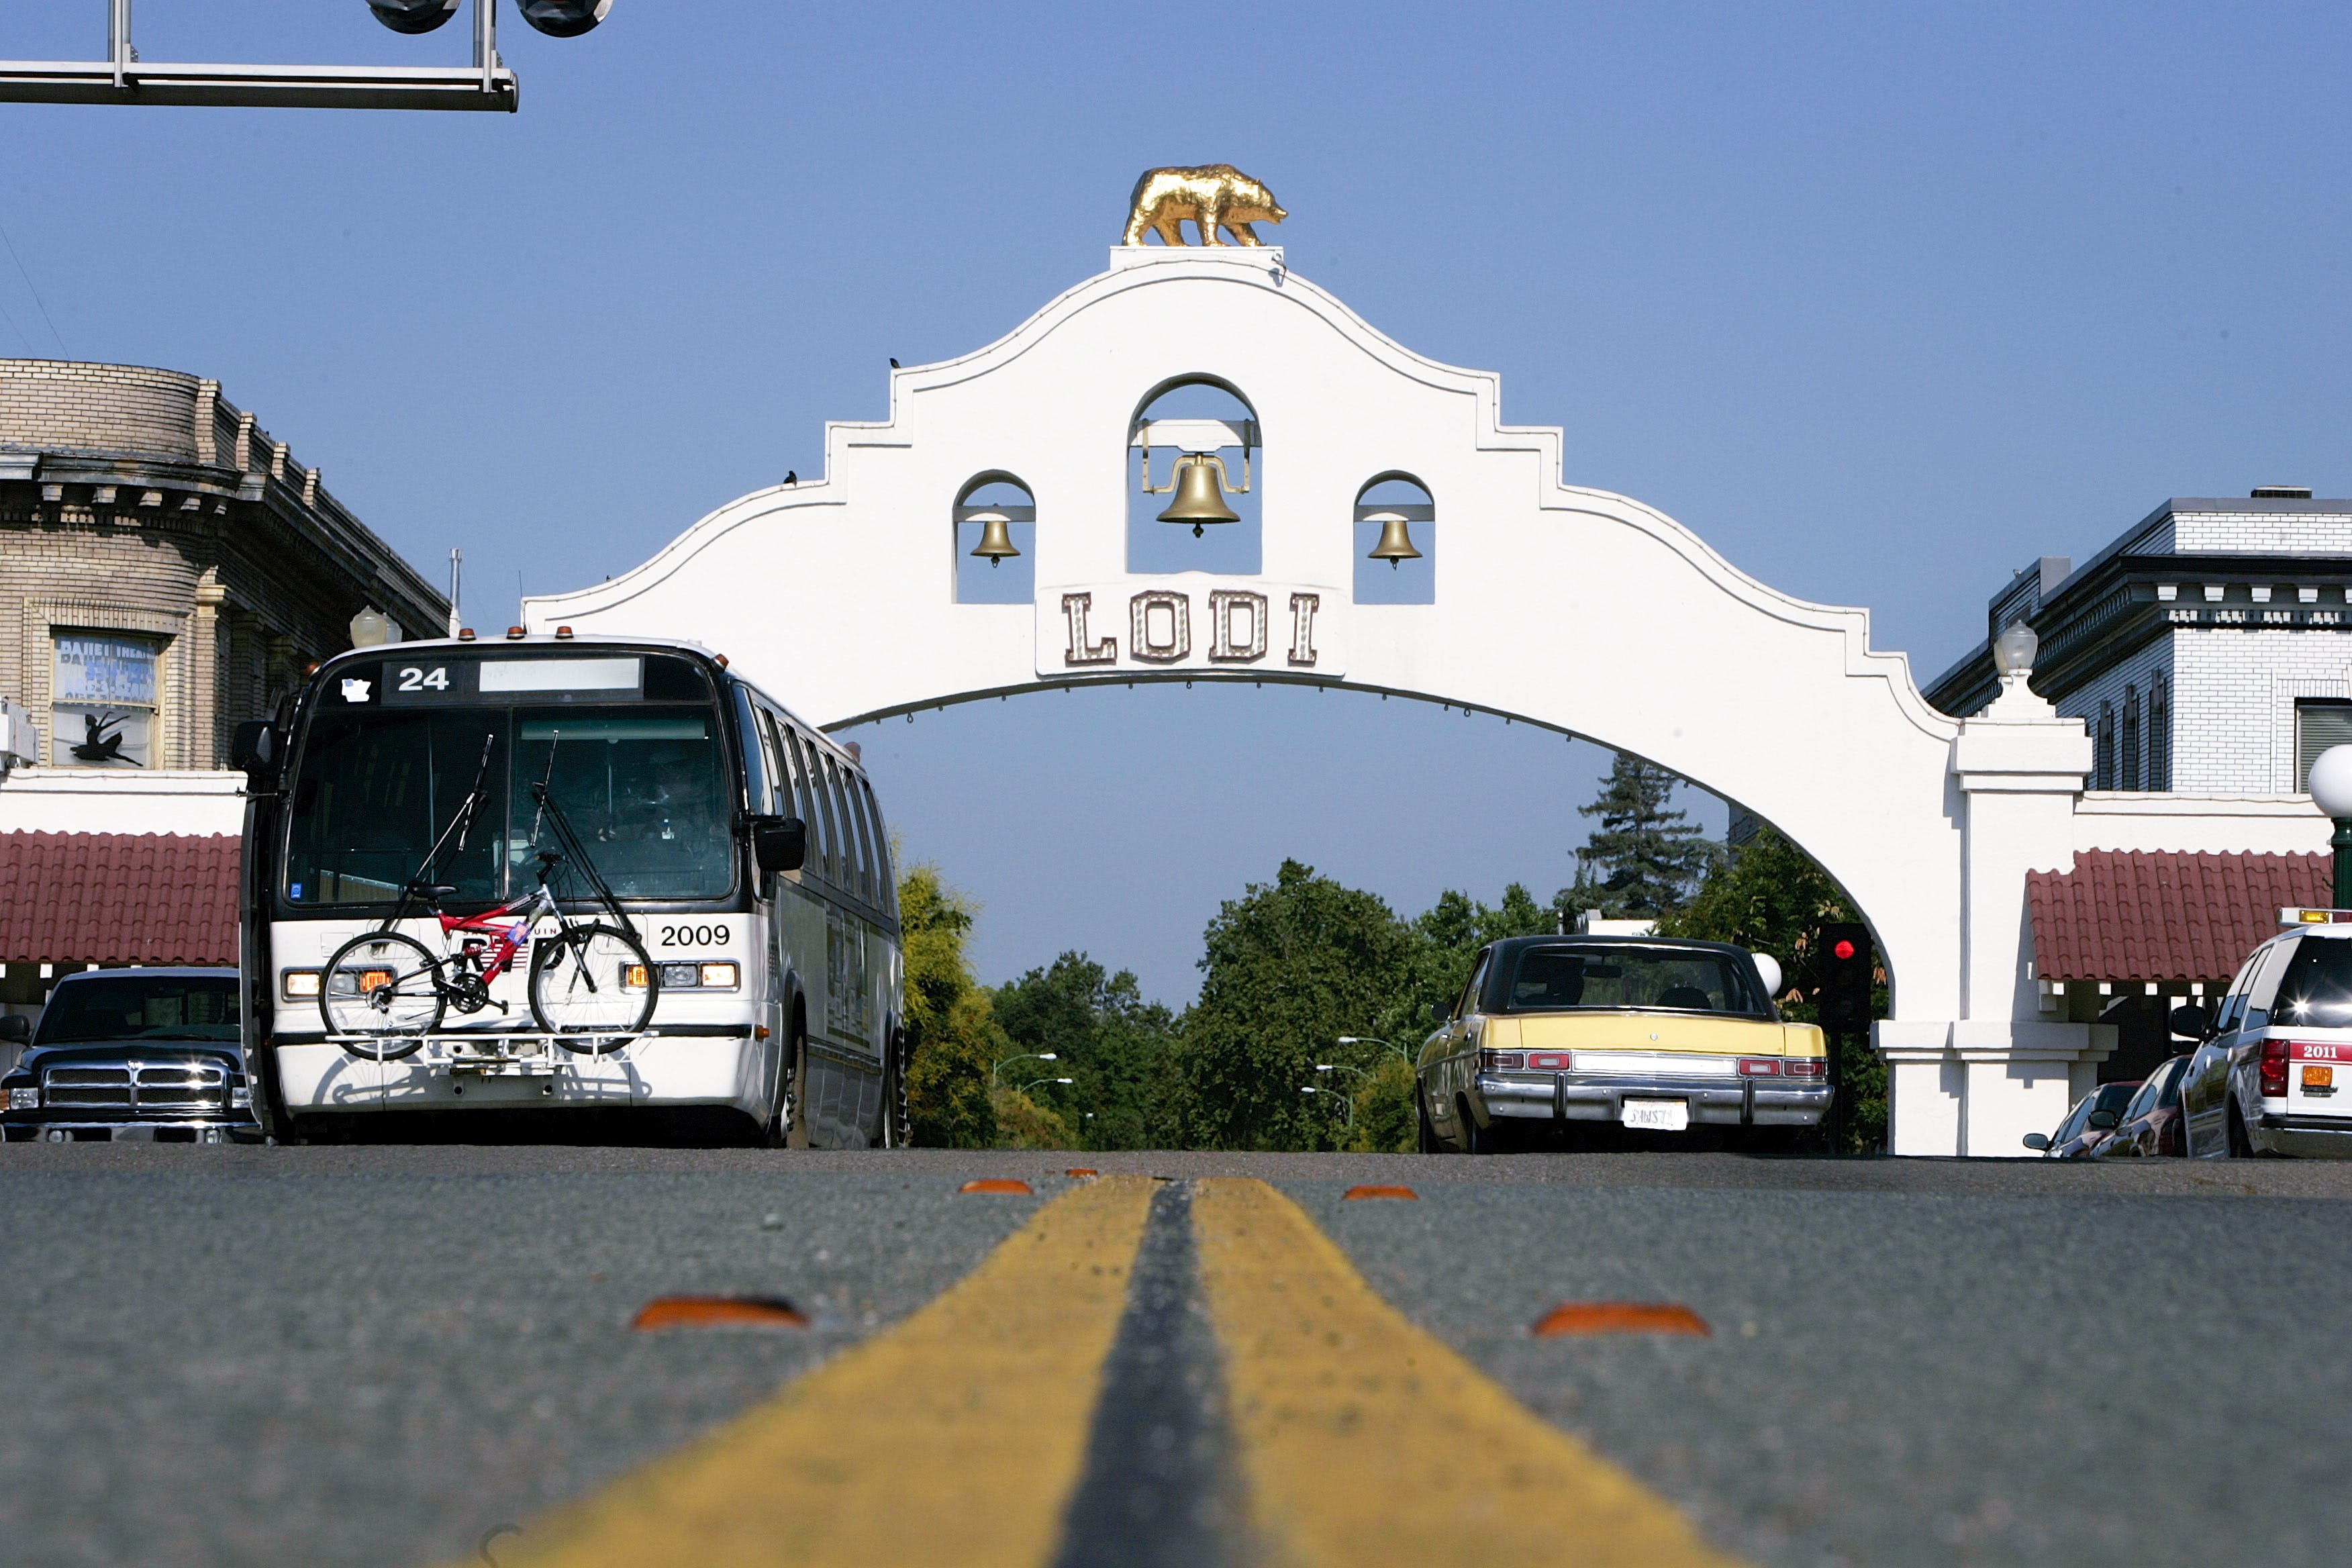 LODI, CA - JUNE 10:  Main Street as seen on June 10, 2005 in Lodi, California. Lodi, the sleepy Northern California town has been hit with controversy after 5 people were arrested by the FBI in connection with immigration and possible terrorist activities.   (Photo by David Paul Morris/Getty Images)